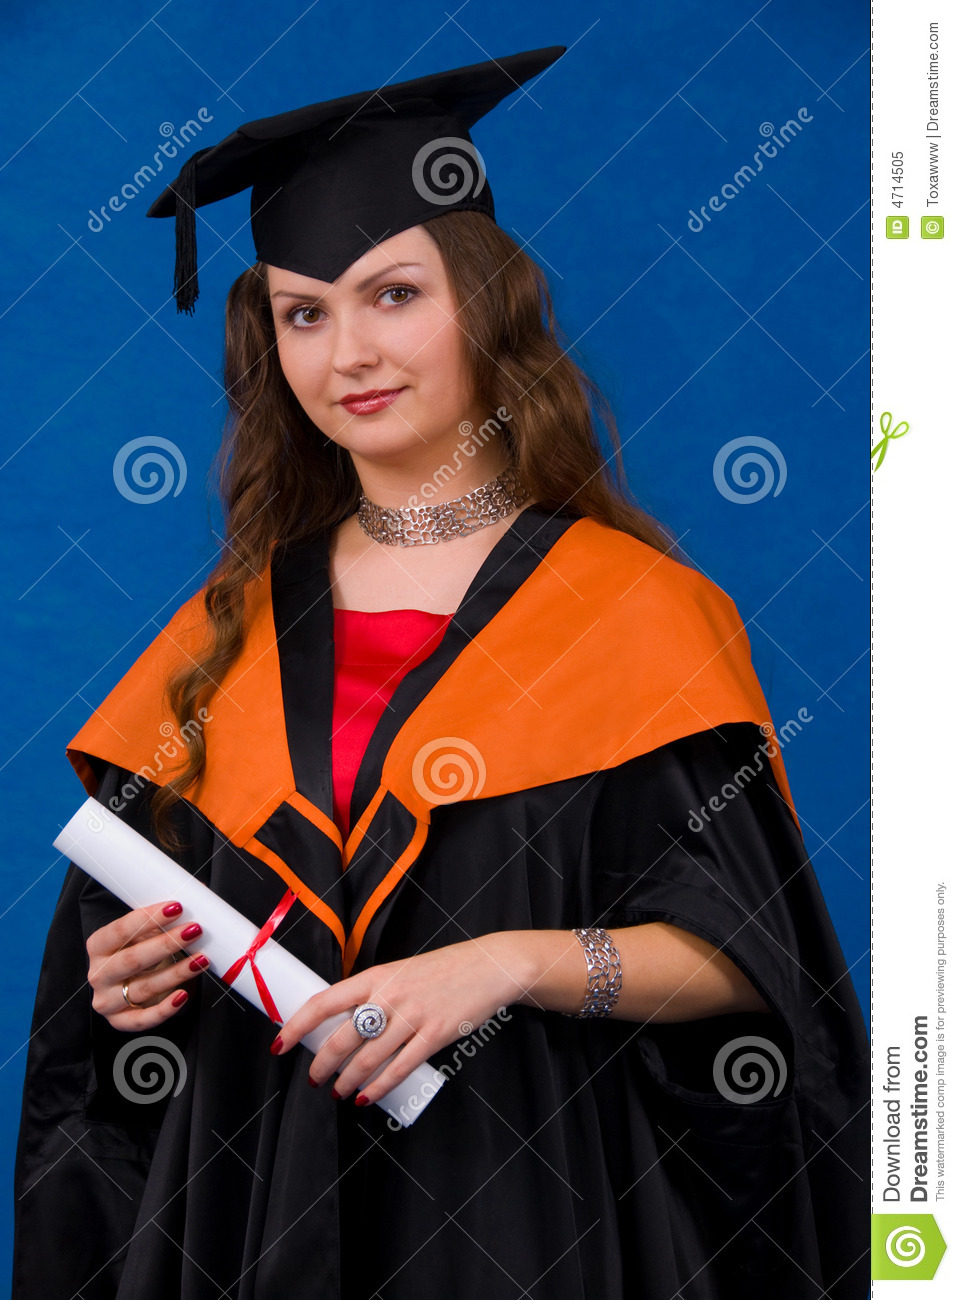 Holder of a master s degree